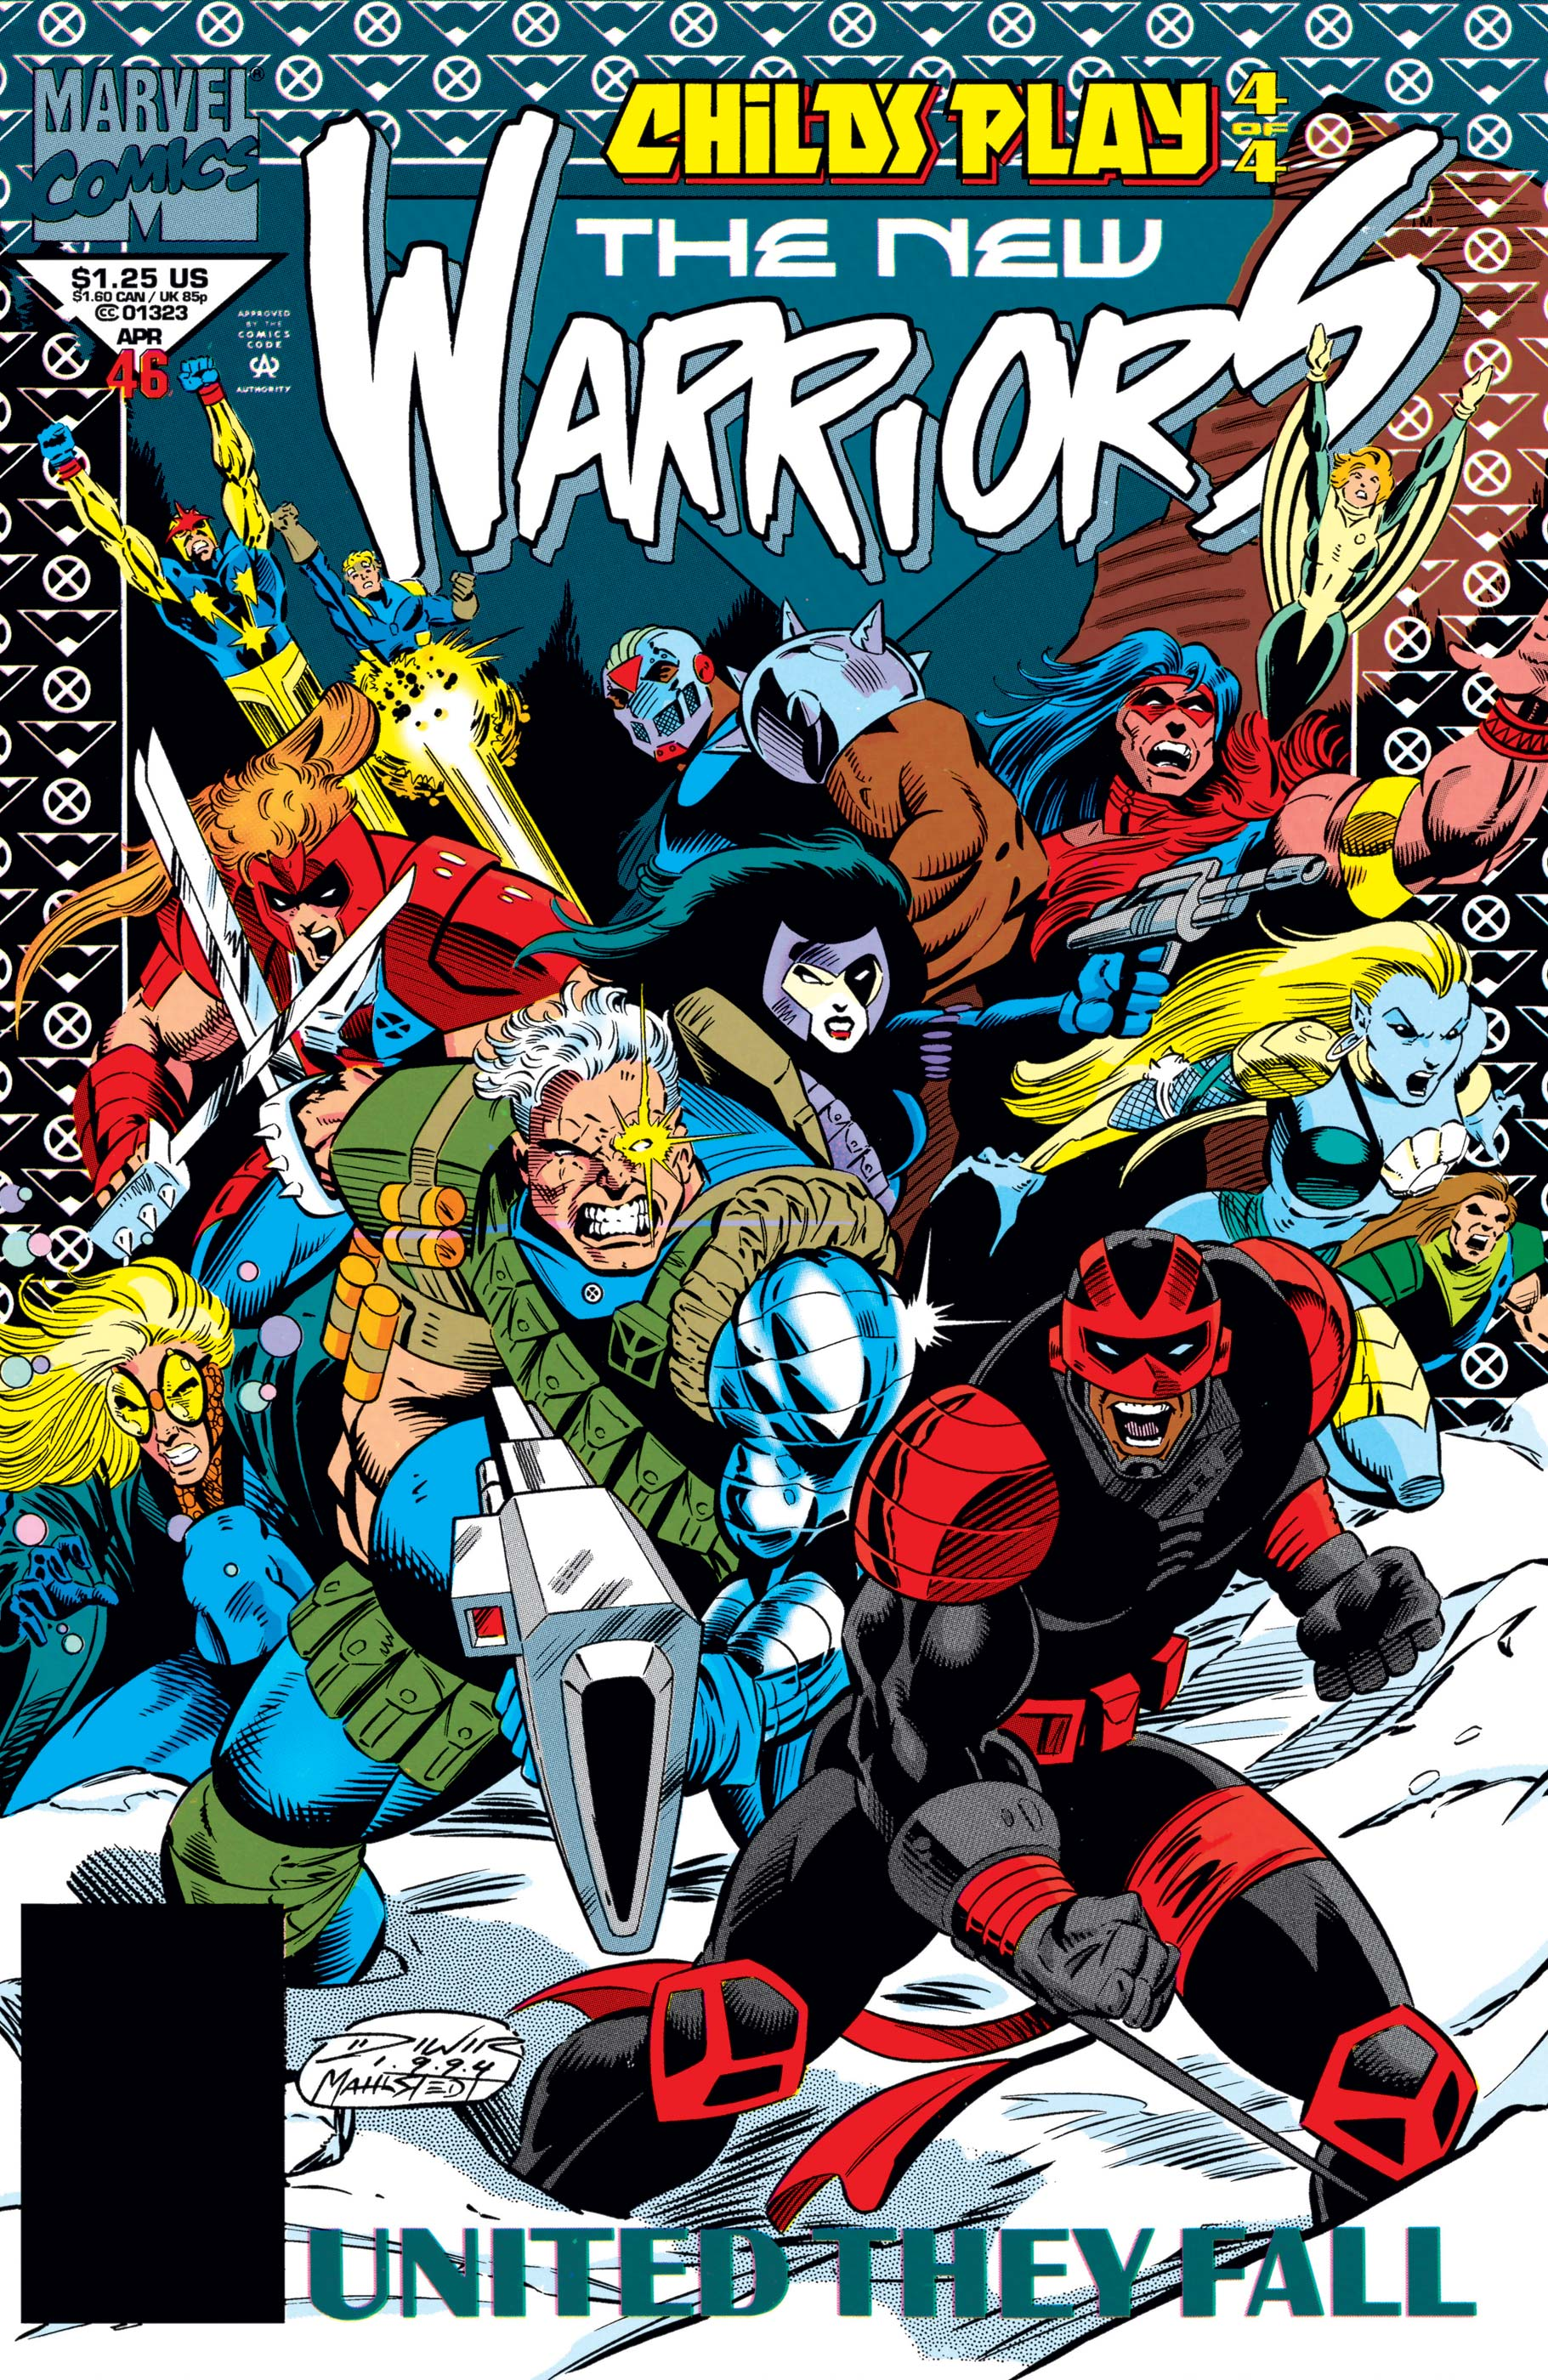 New Warriors (1990) #46